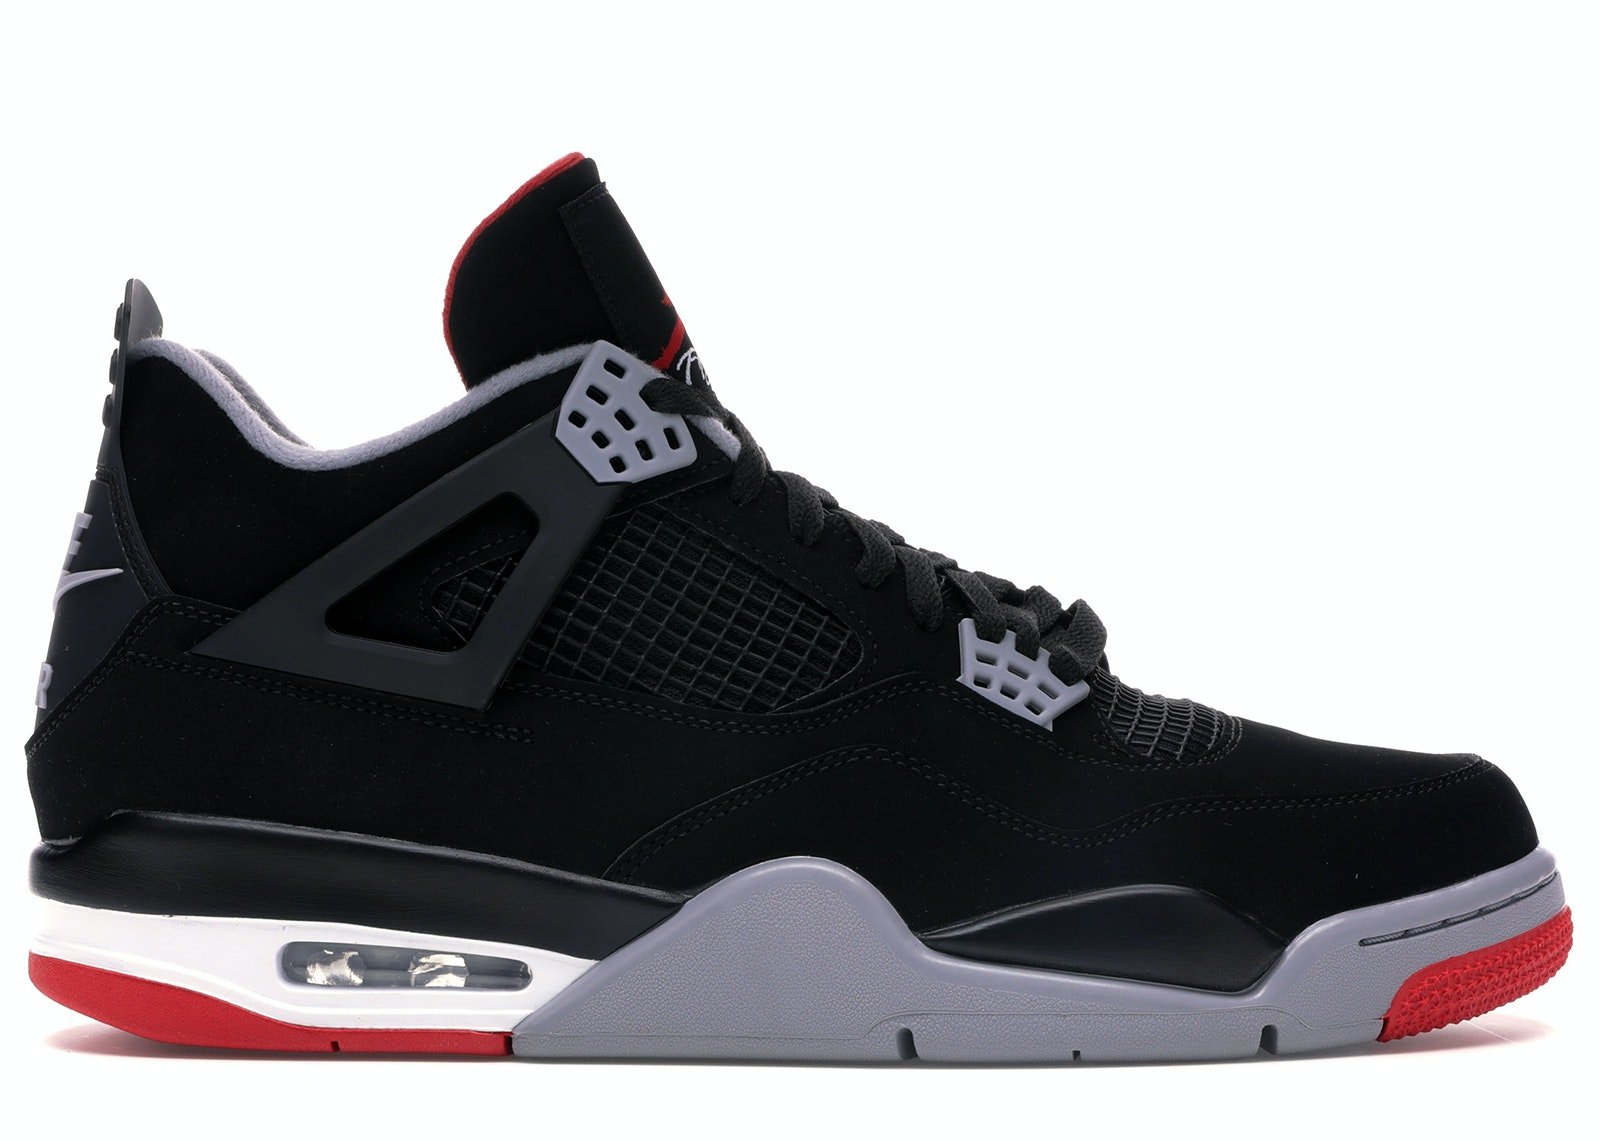 where can you buy jordan shoes online